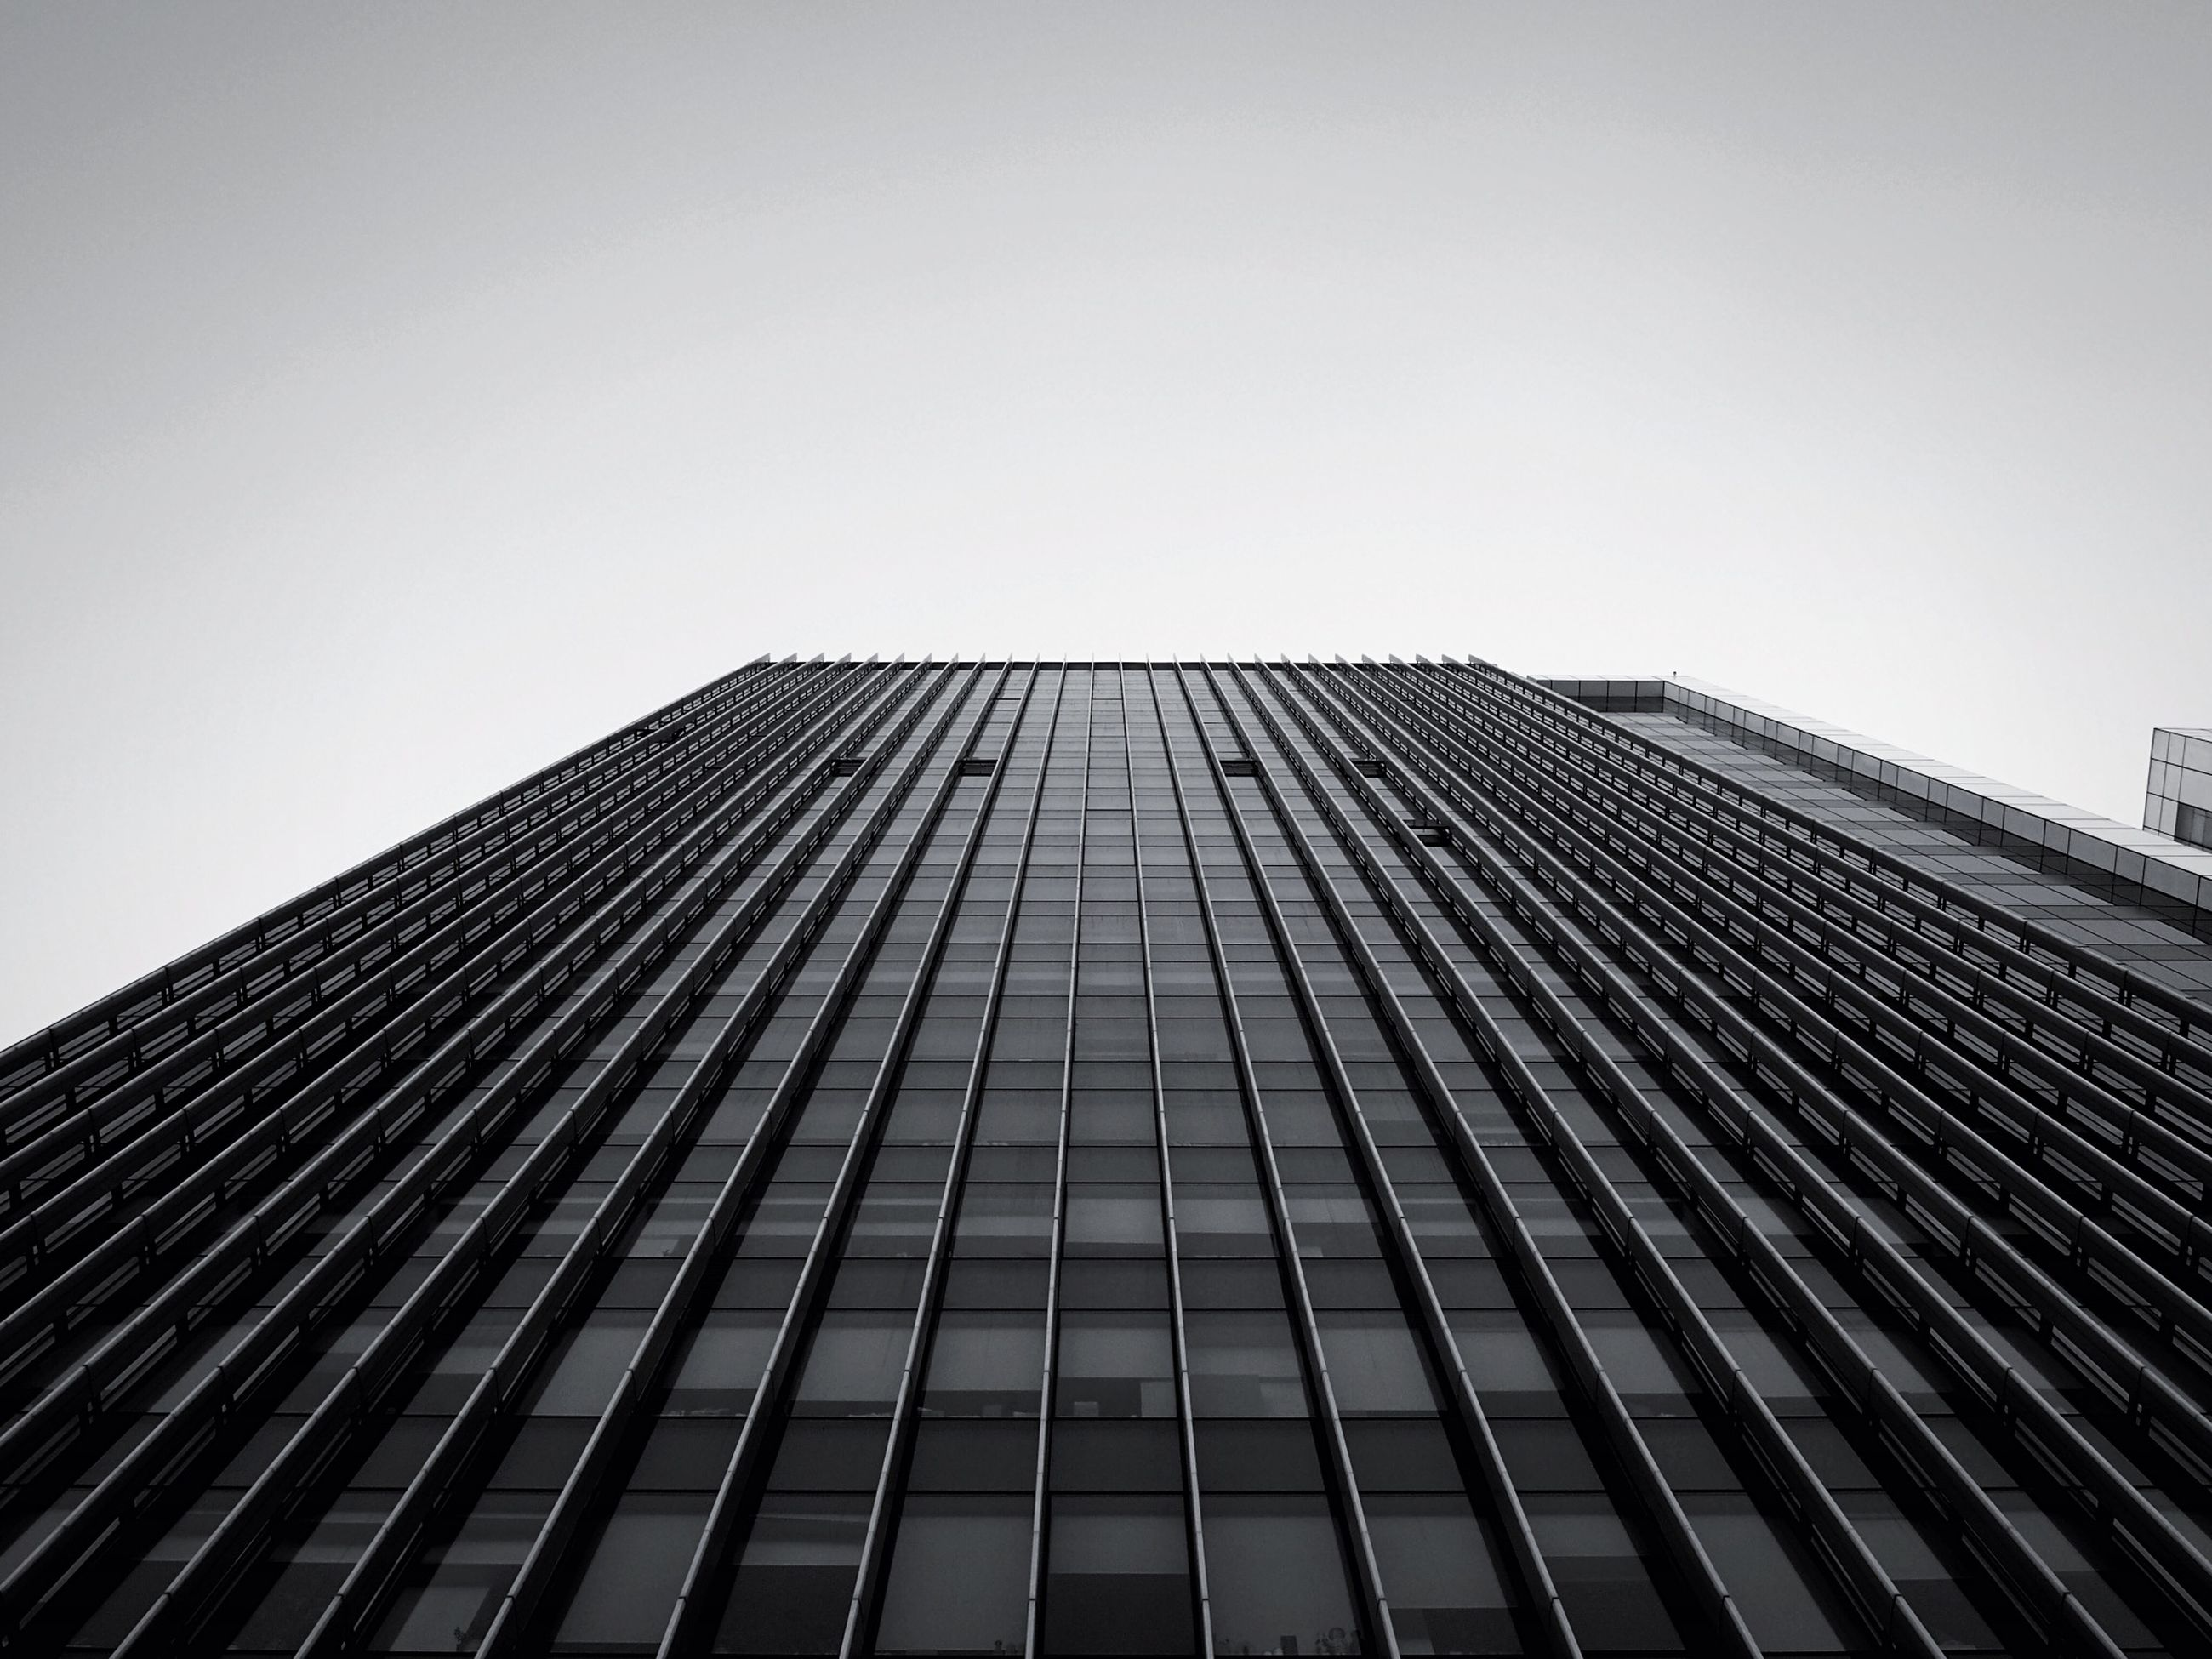 architecture, building exterior, built structure, low angle view, modern, skyscraper, office building, tall - high, city, clear sky, tower, building, tall, sky, day, glass - material, copy space, outdoors, no people, pattern